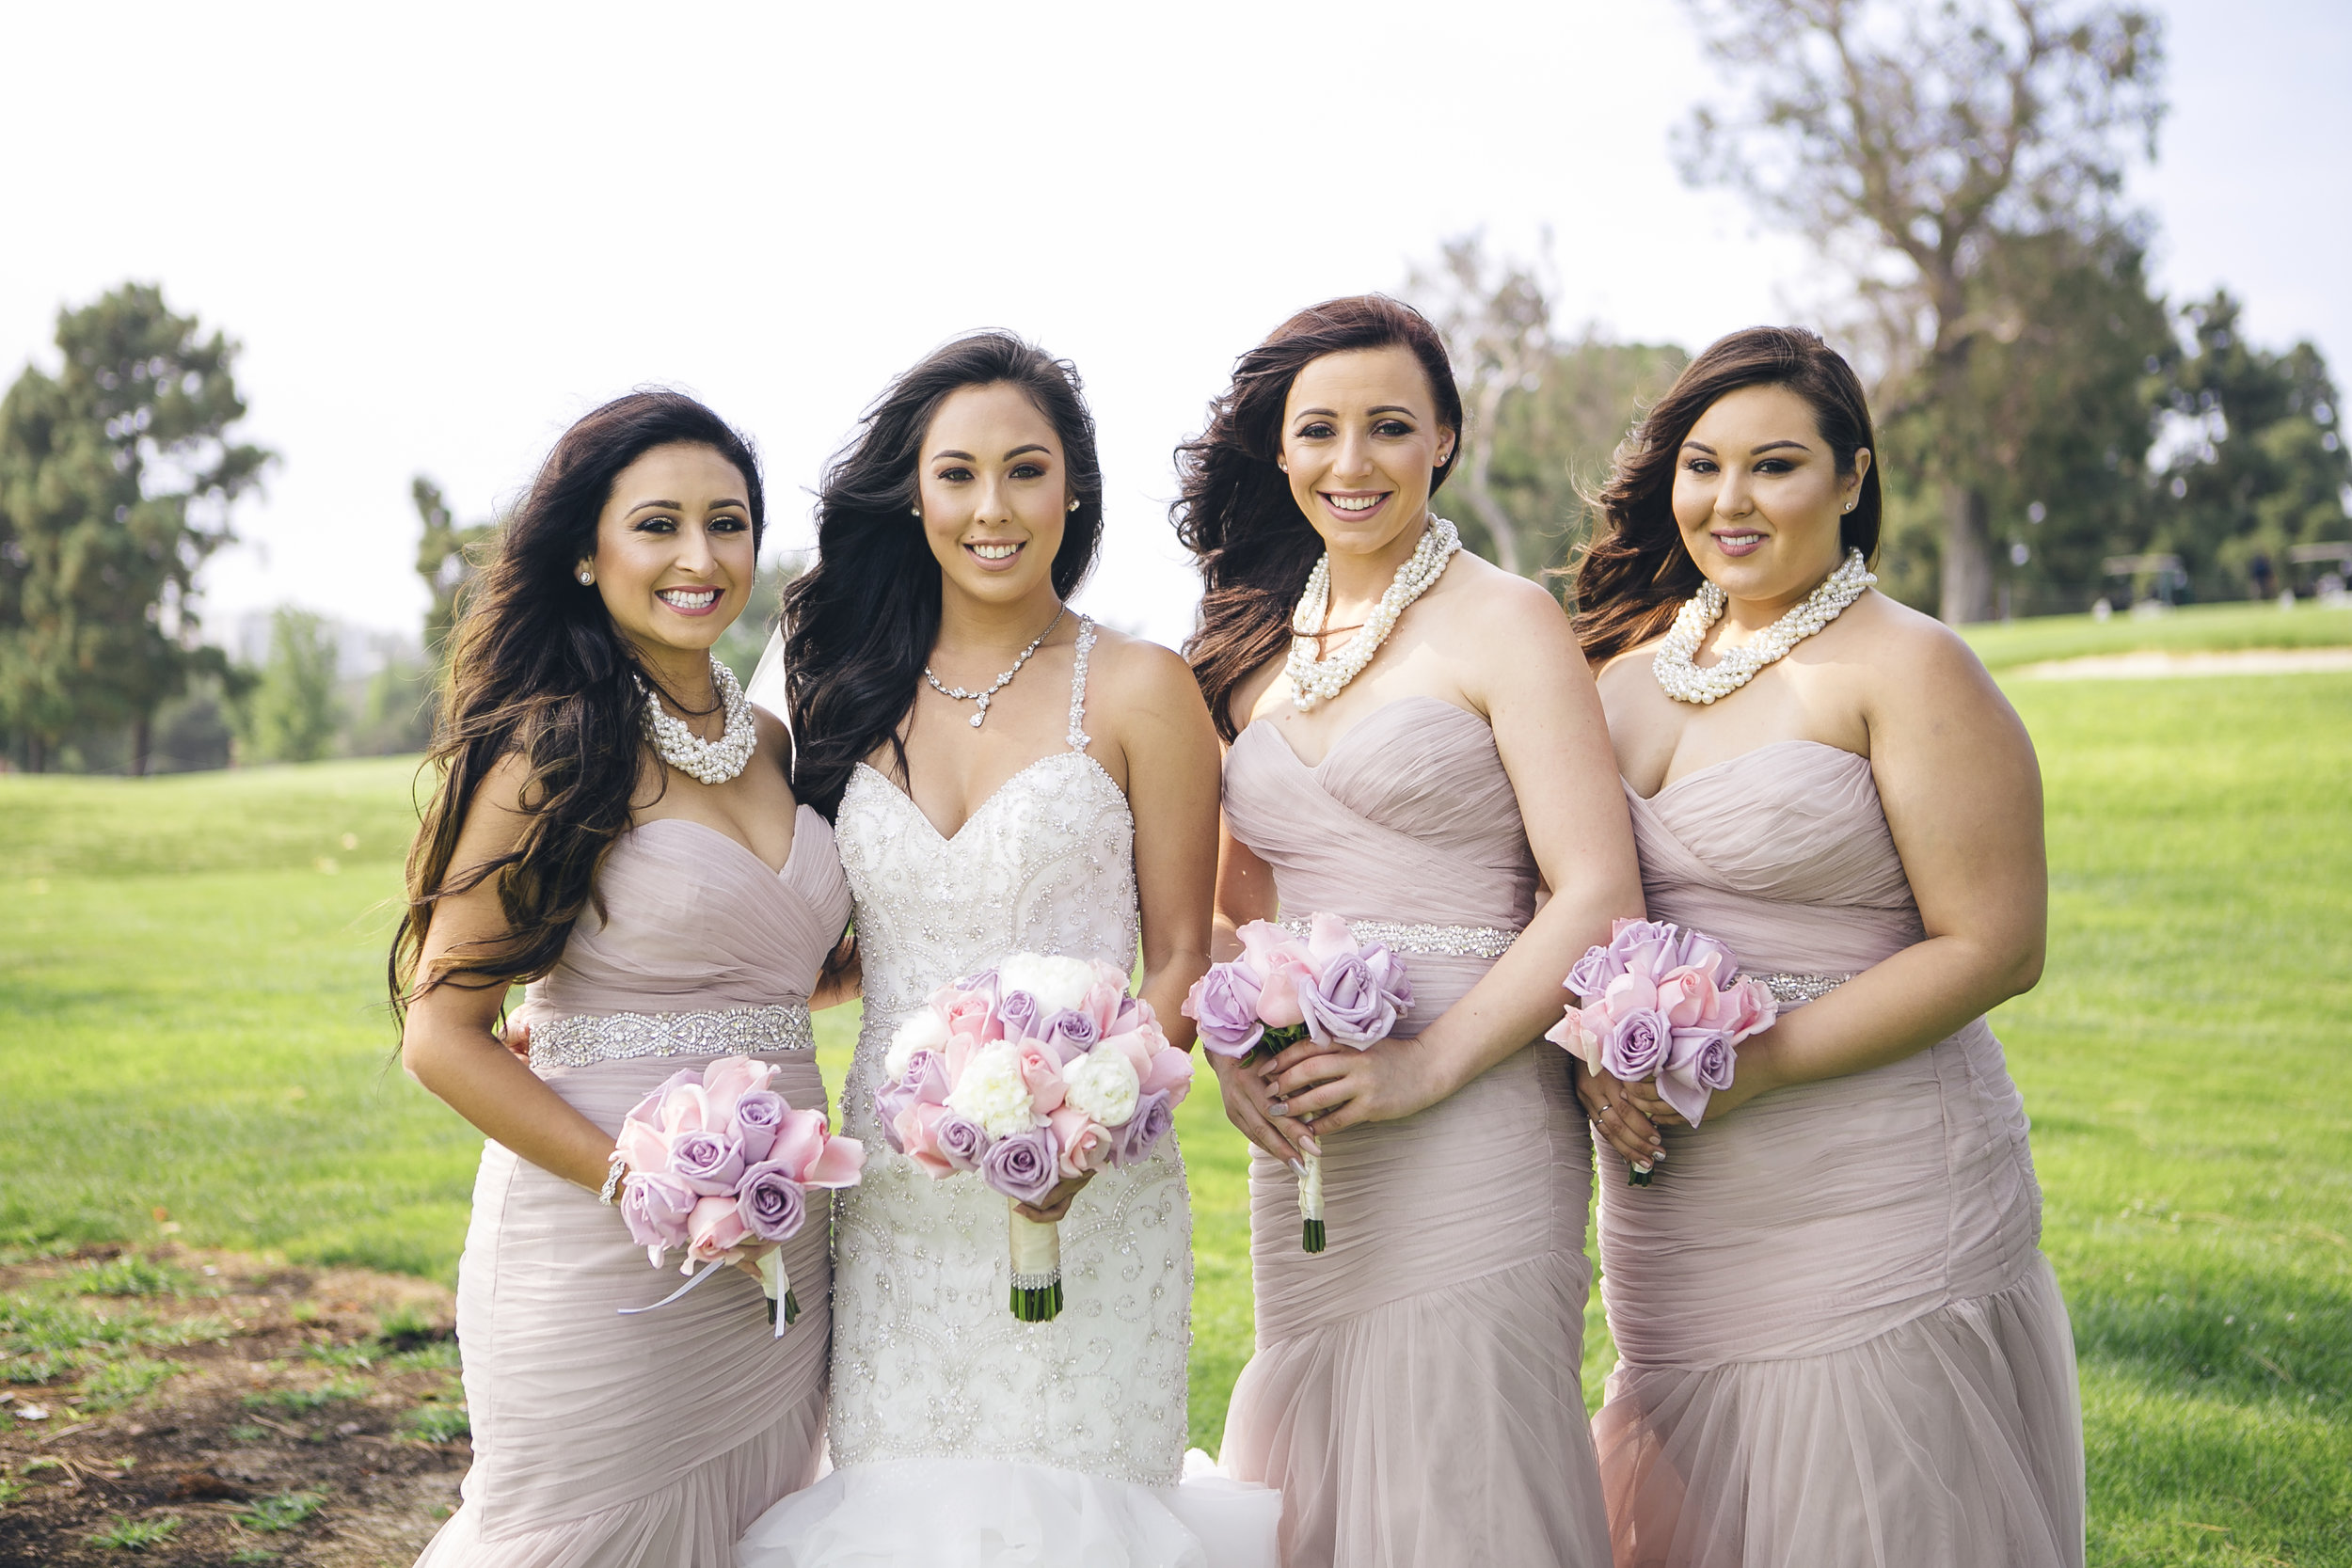 posh bridal party at summer wedding